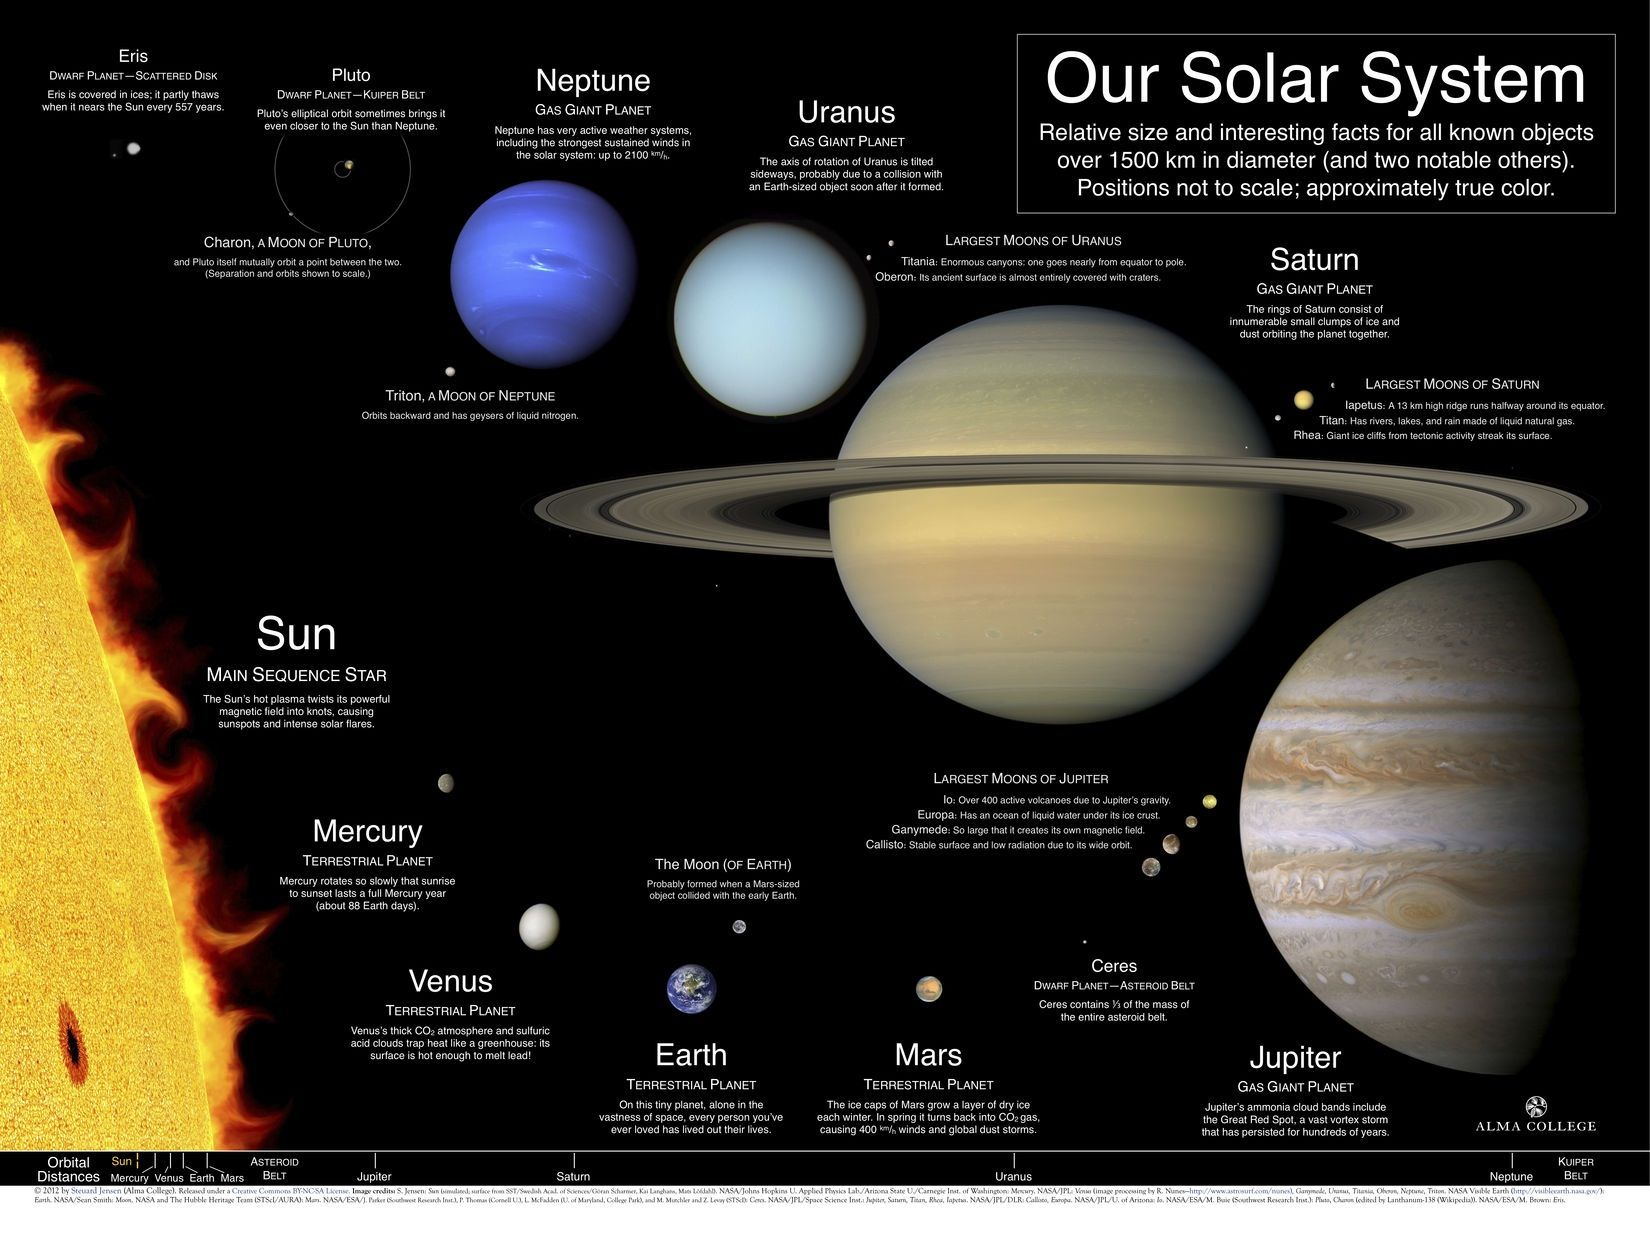 the inner and outer planets in our solar system universe - HD1650×1237